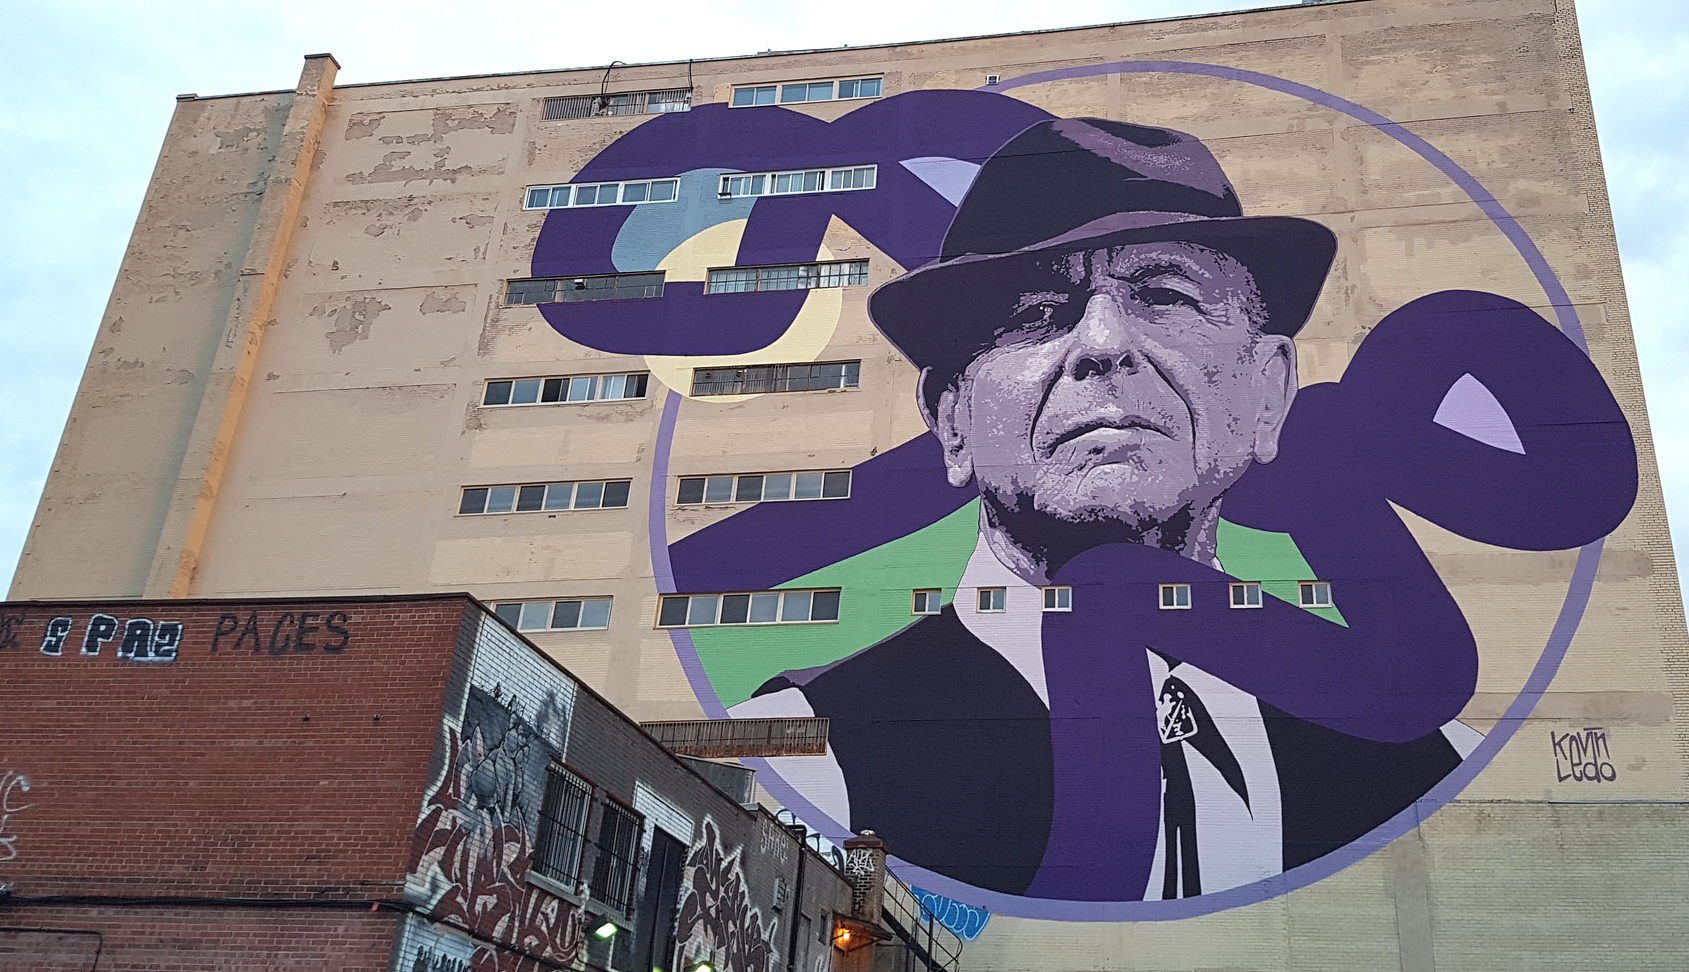 Mural of Leonard Cohen in Montreal by artist Kevin Ledo (Photo/Flickr-fredisonfire CC BY-SA 2.0)